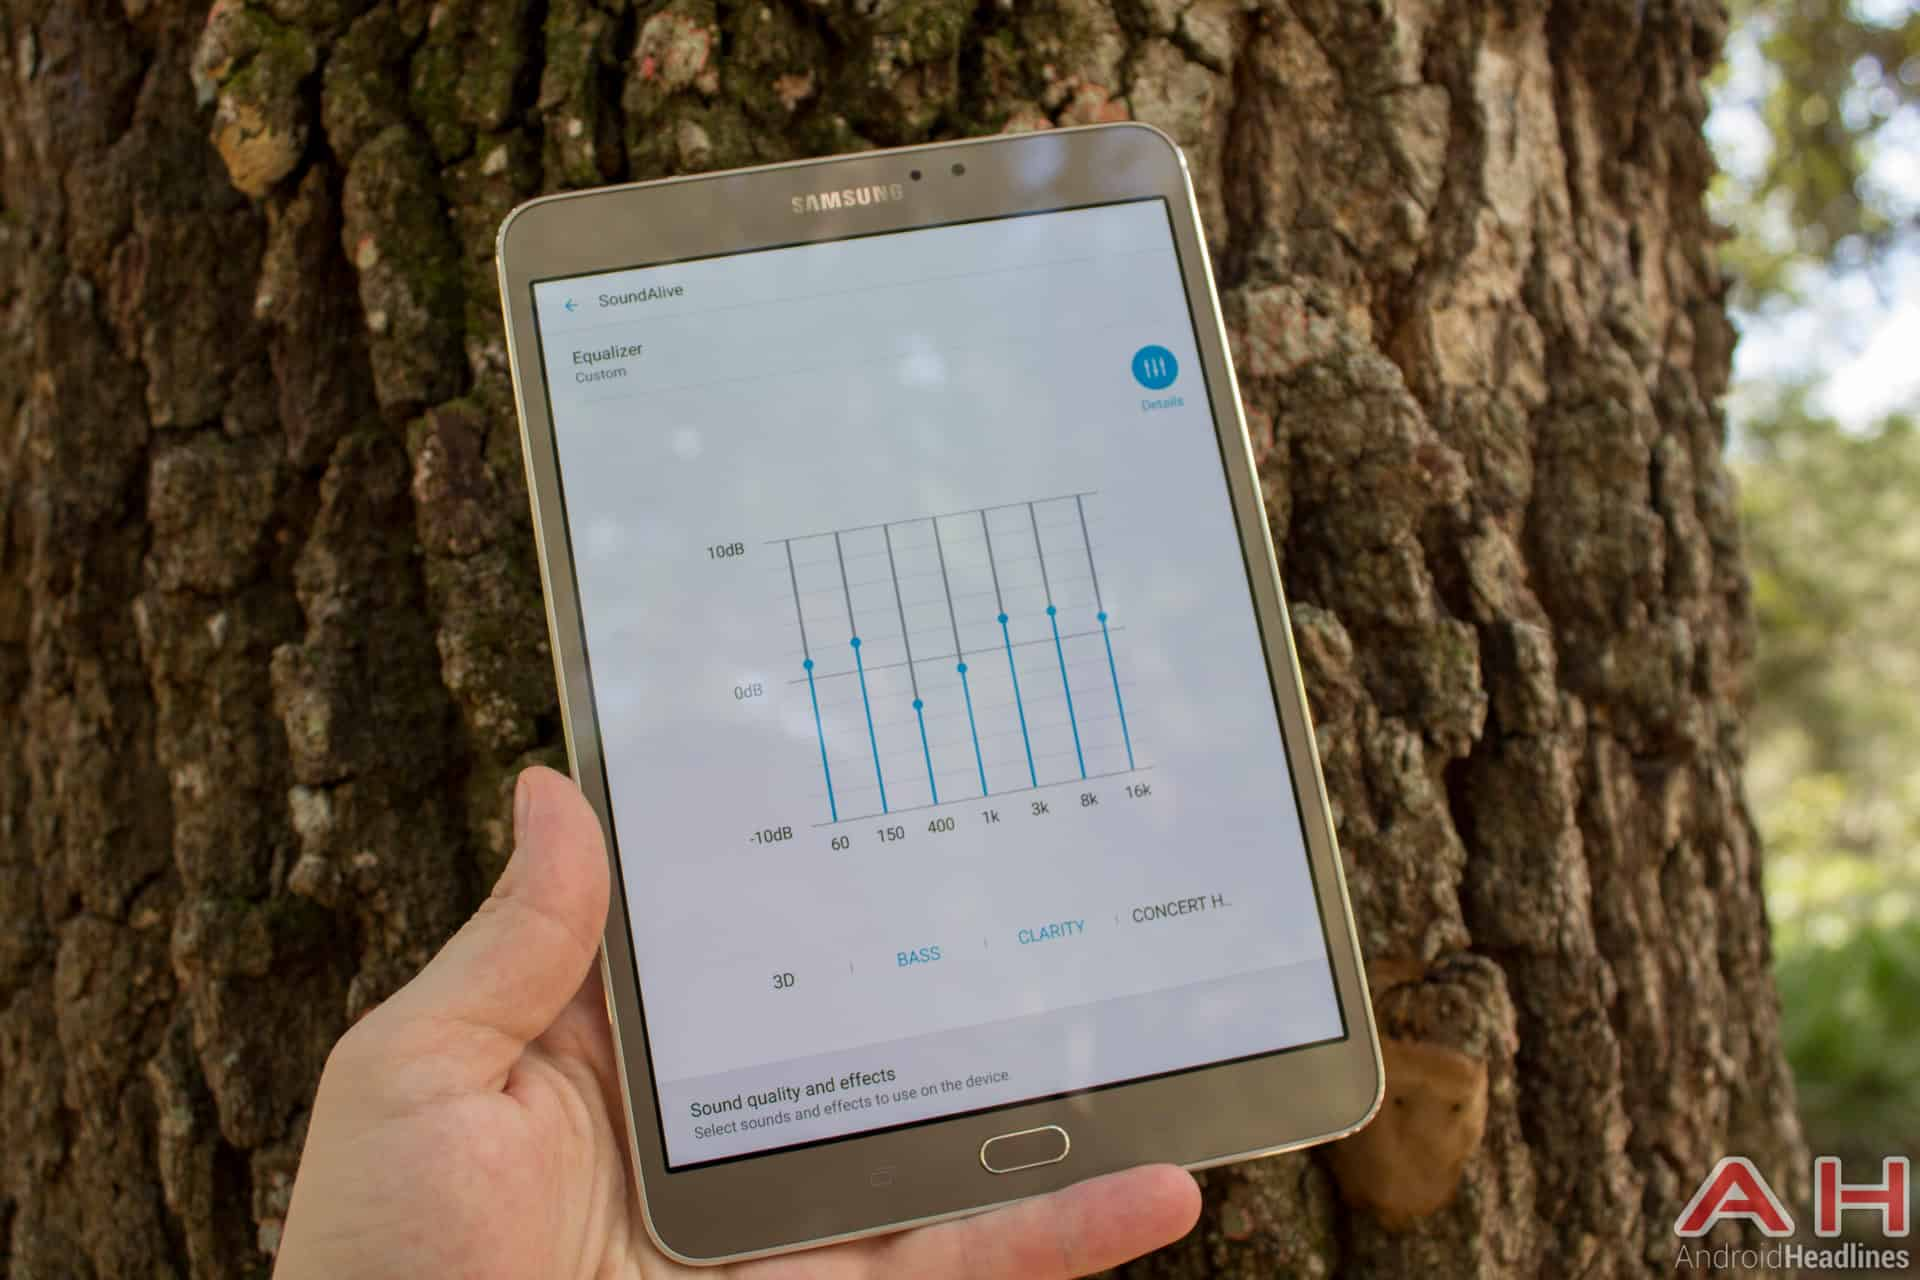 Samsung-Galaxy-Tab-S2-AH-audio